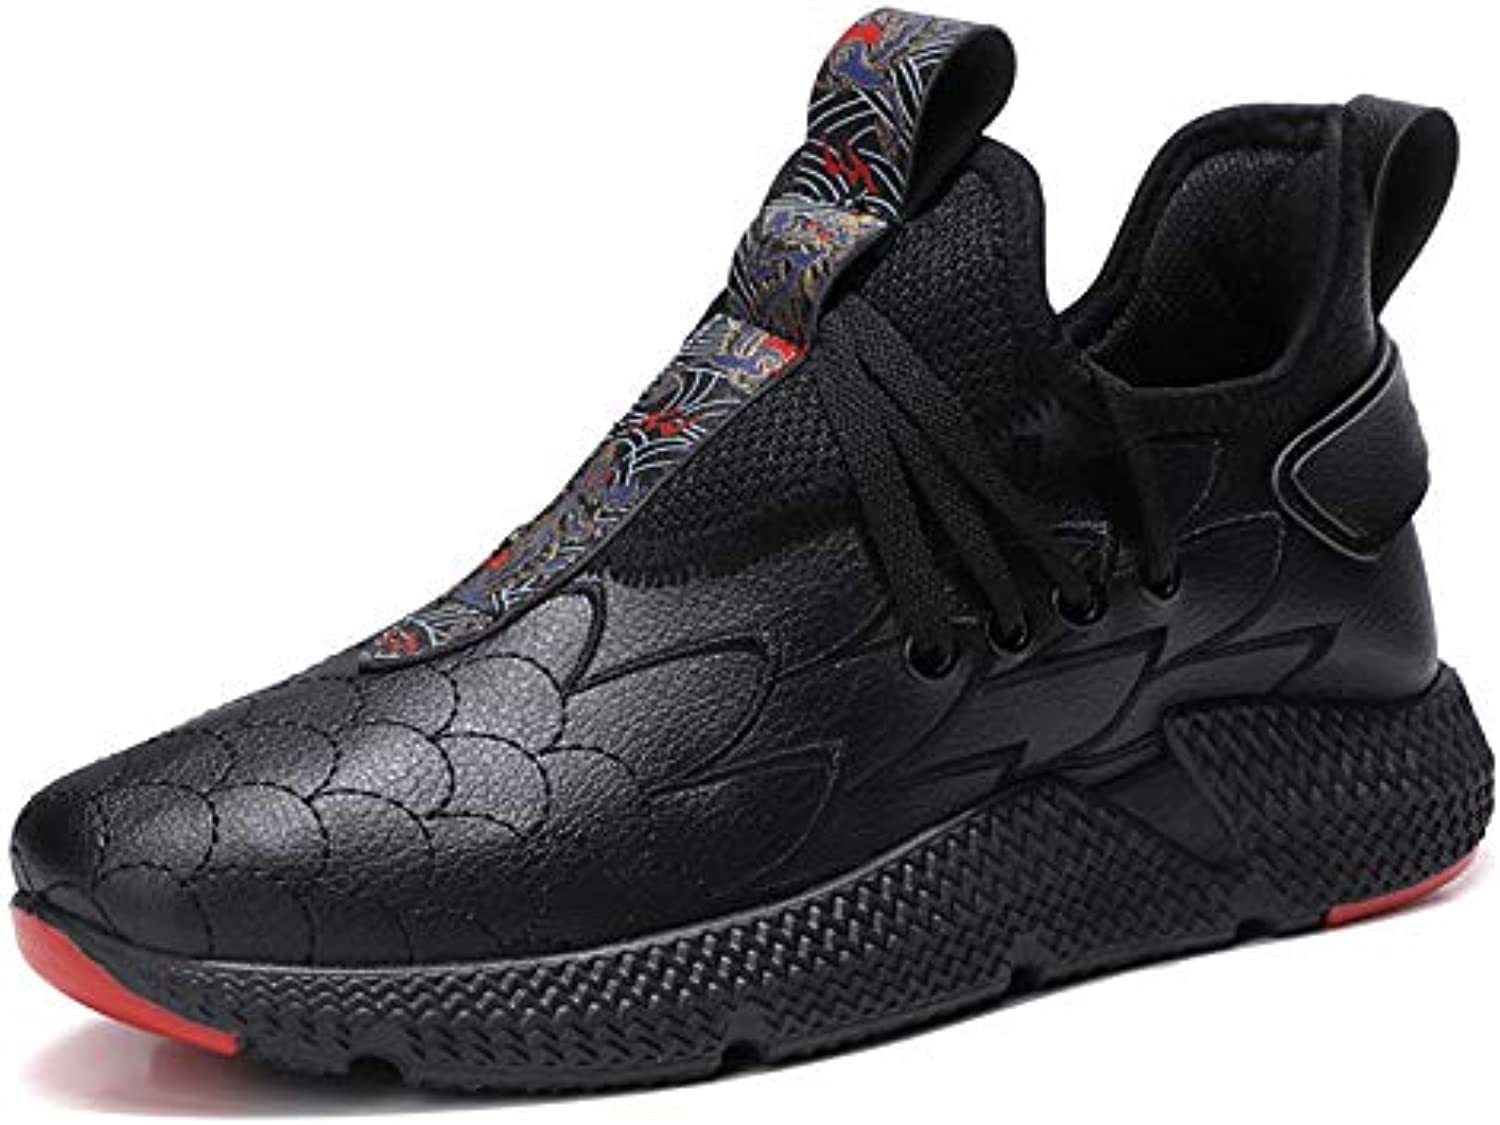 LOVDRAM Boots Men's New Men'S Fashion Personality Youth Youth Students Autumn And Winter Sports And Leisure Men'S shoes